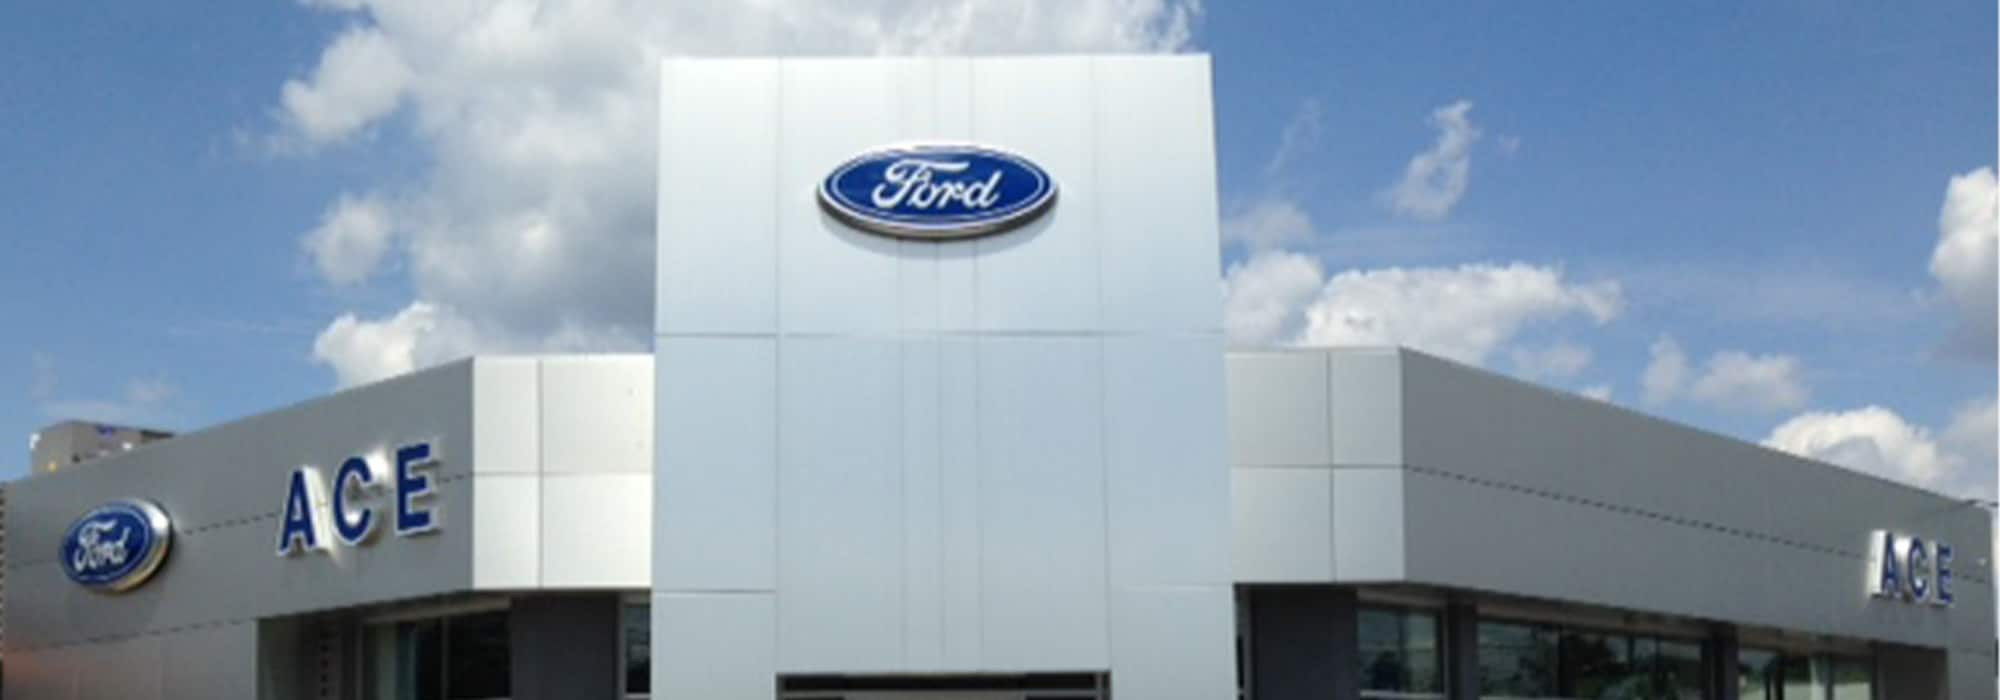 Ford Dealers Nj >> About Ace Ford Ace Ford Your Local Ford Dealership In Nj